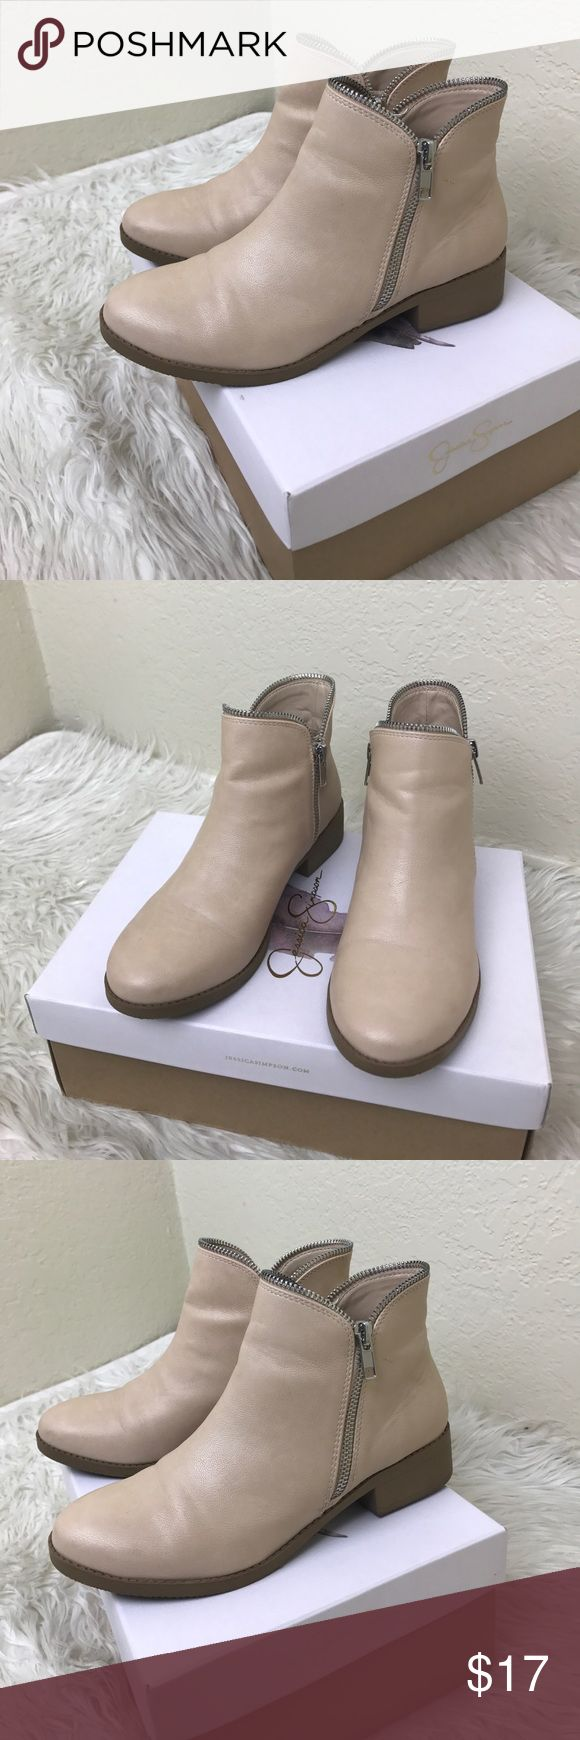 Charlotte Russe boots Nude boots in perfect condition. charlotte russe Shoes Ankle Boots & Booties